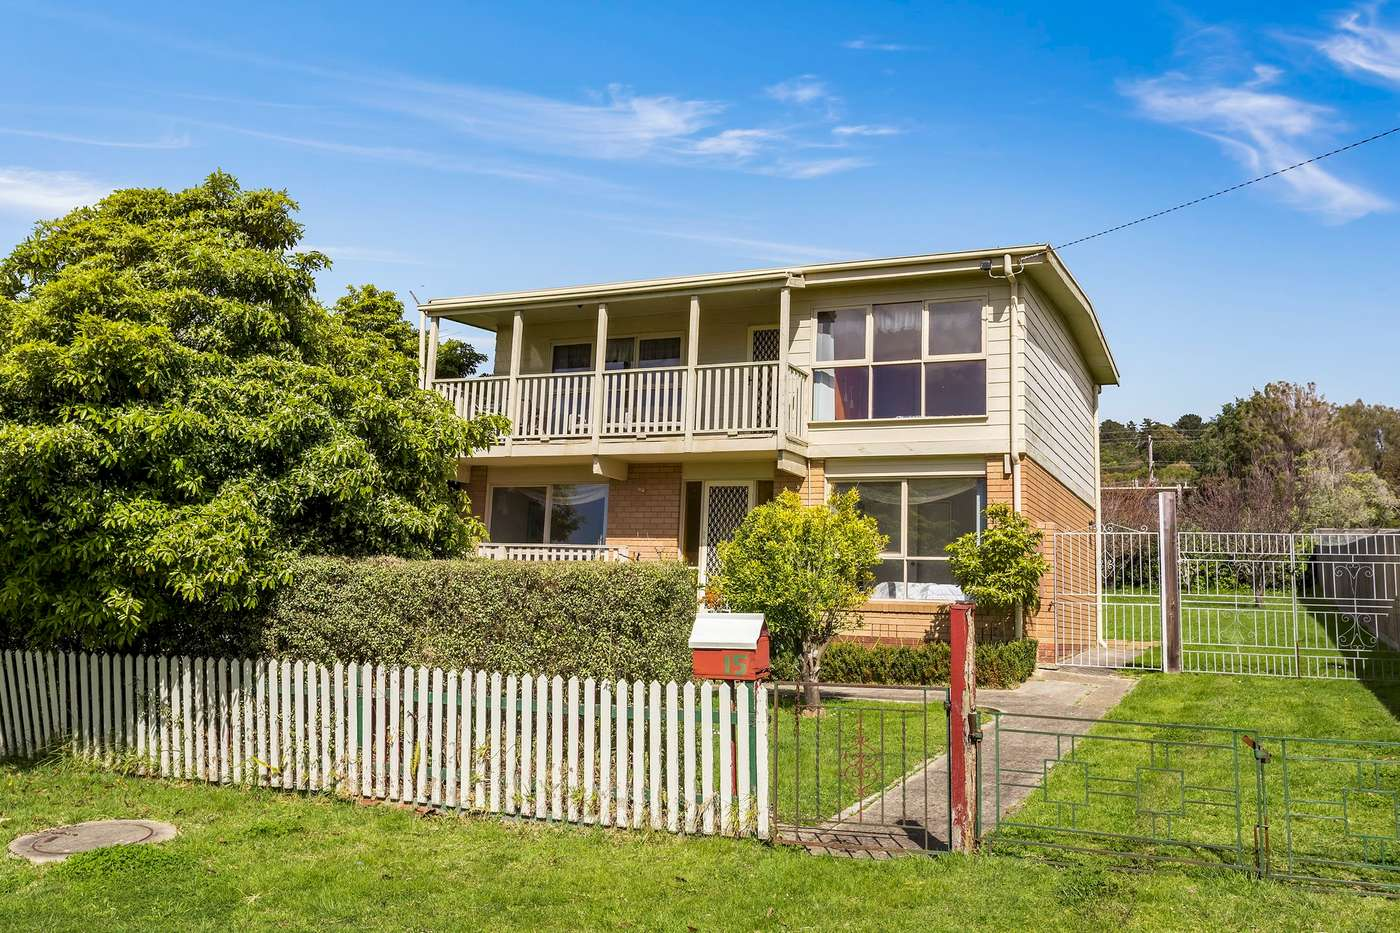 Main view of Homely house listing, 15 Tennent Street, Dromana, VIC 3936